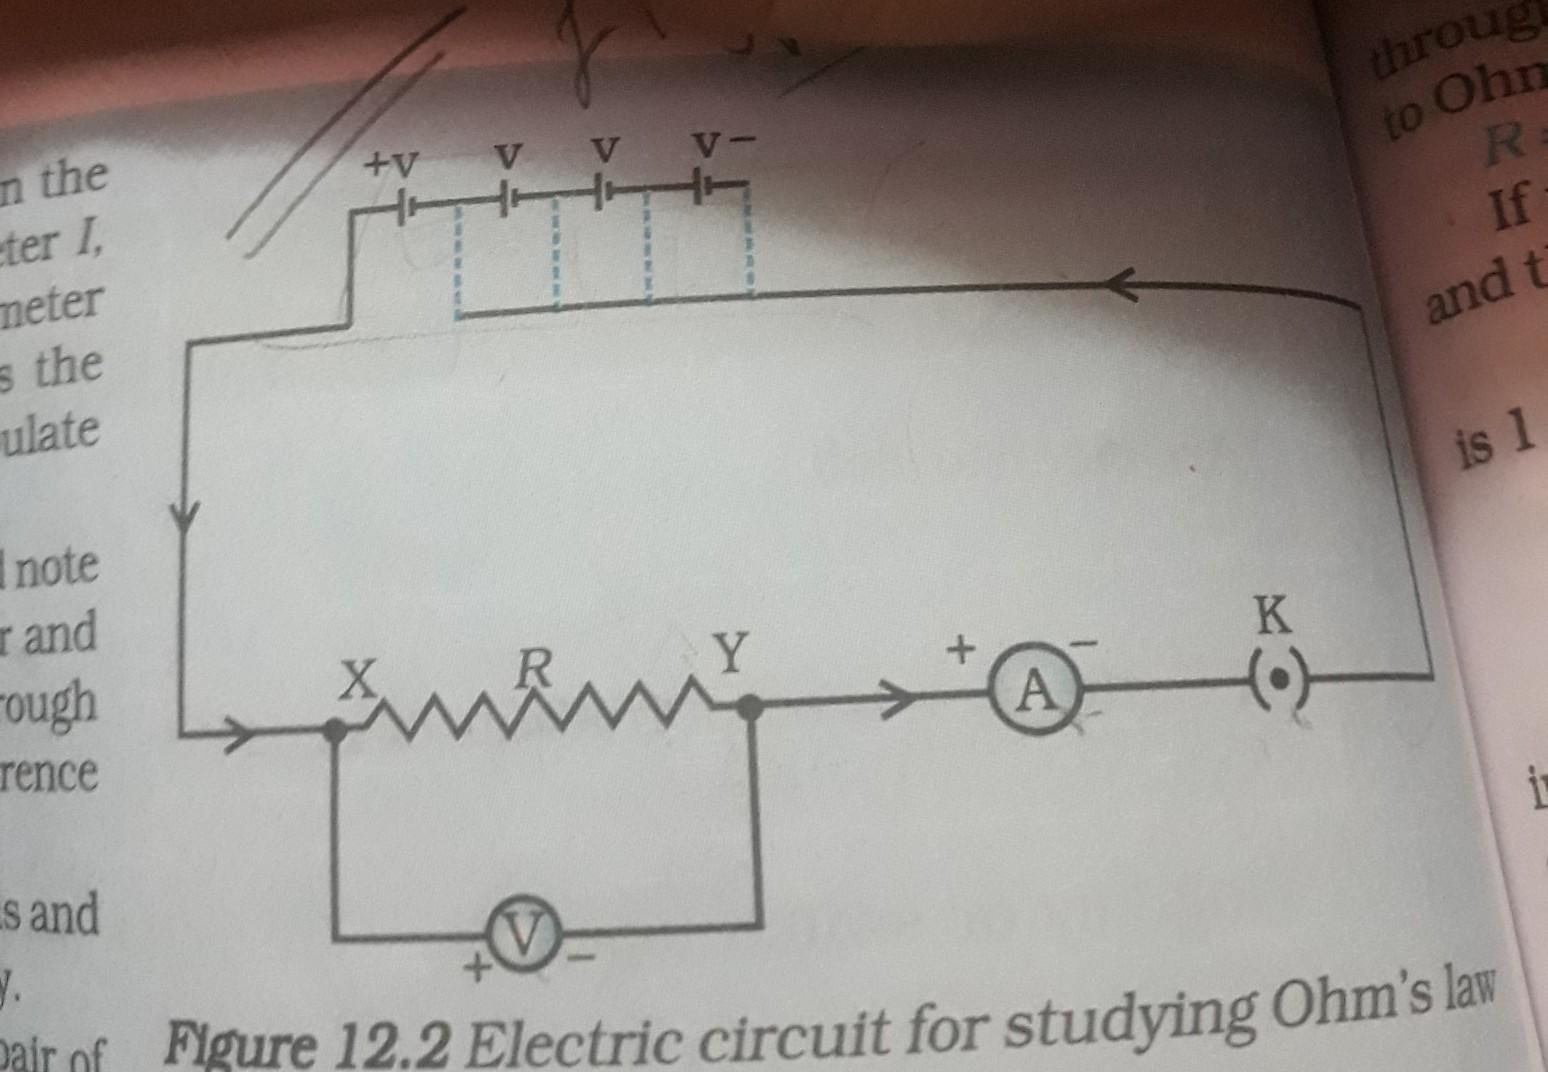 Tremendous Draw The Circuit Diagram Used To Verify Ohms Law Brainly In Wiring Digital Resources Indicompassionincorg